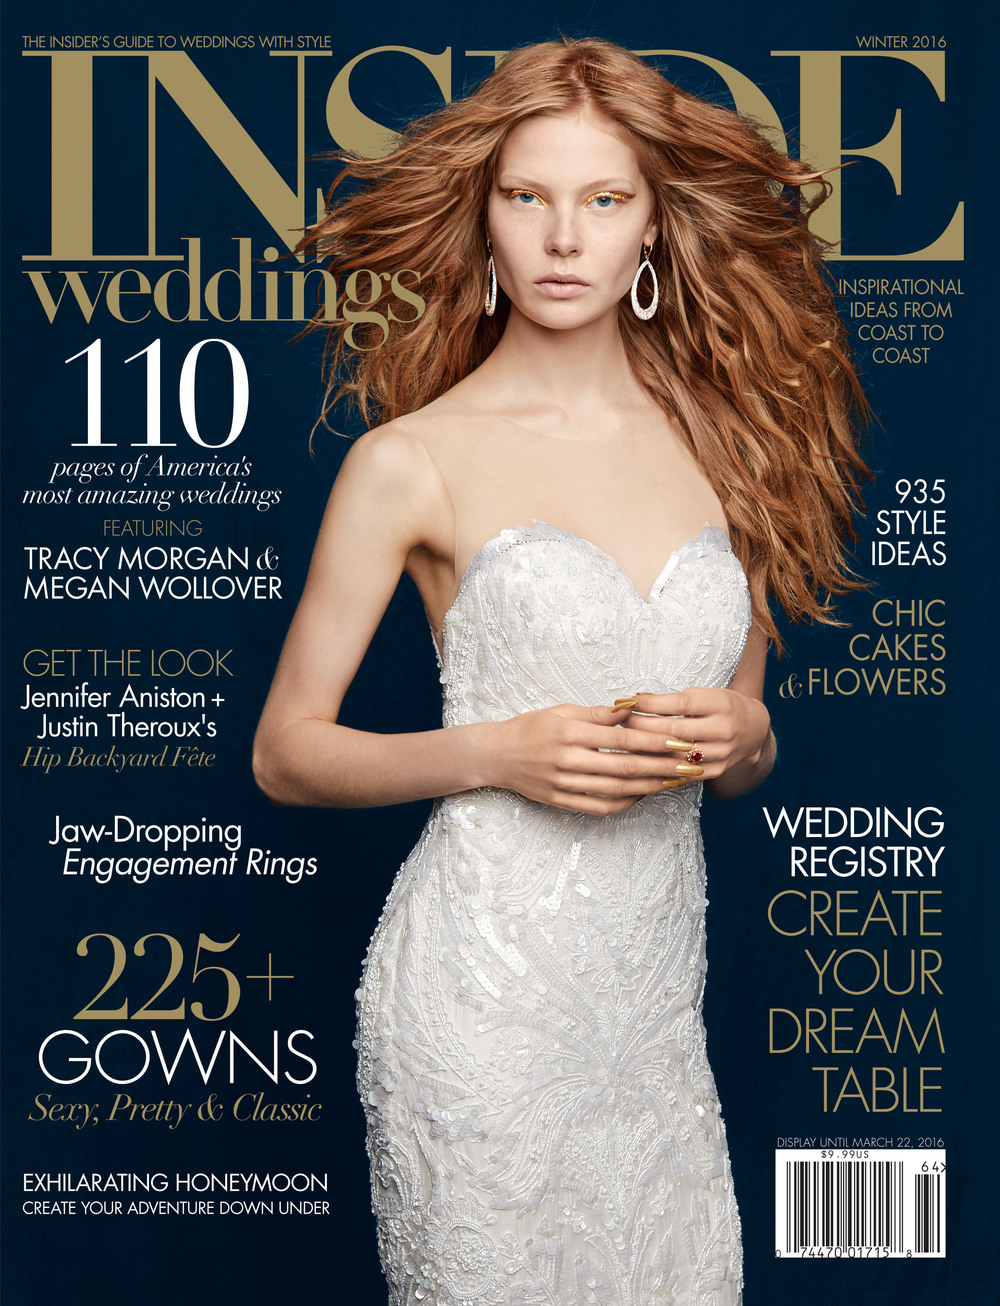 Inside Weddings Winter 2016